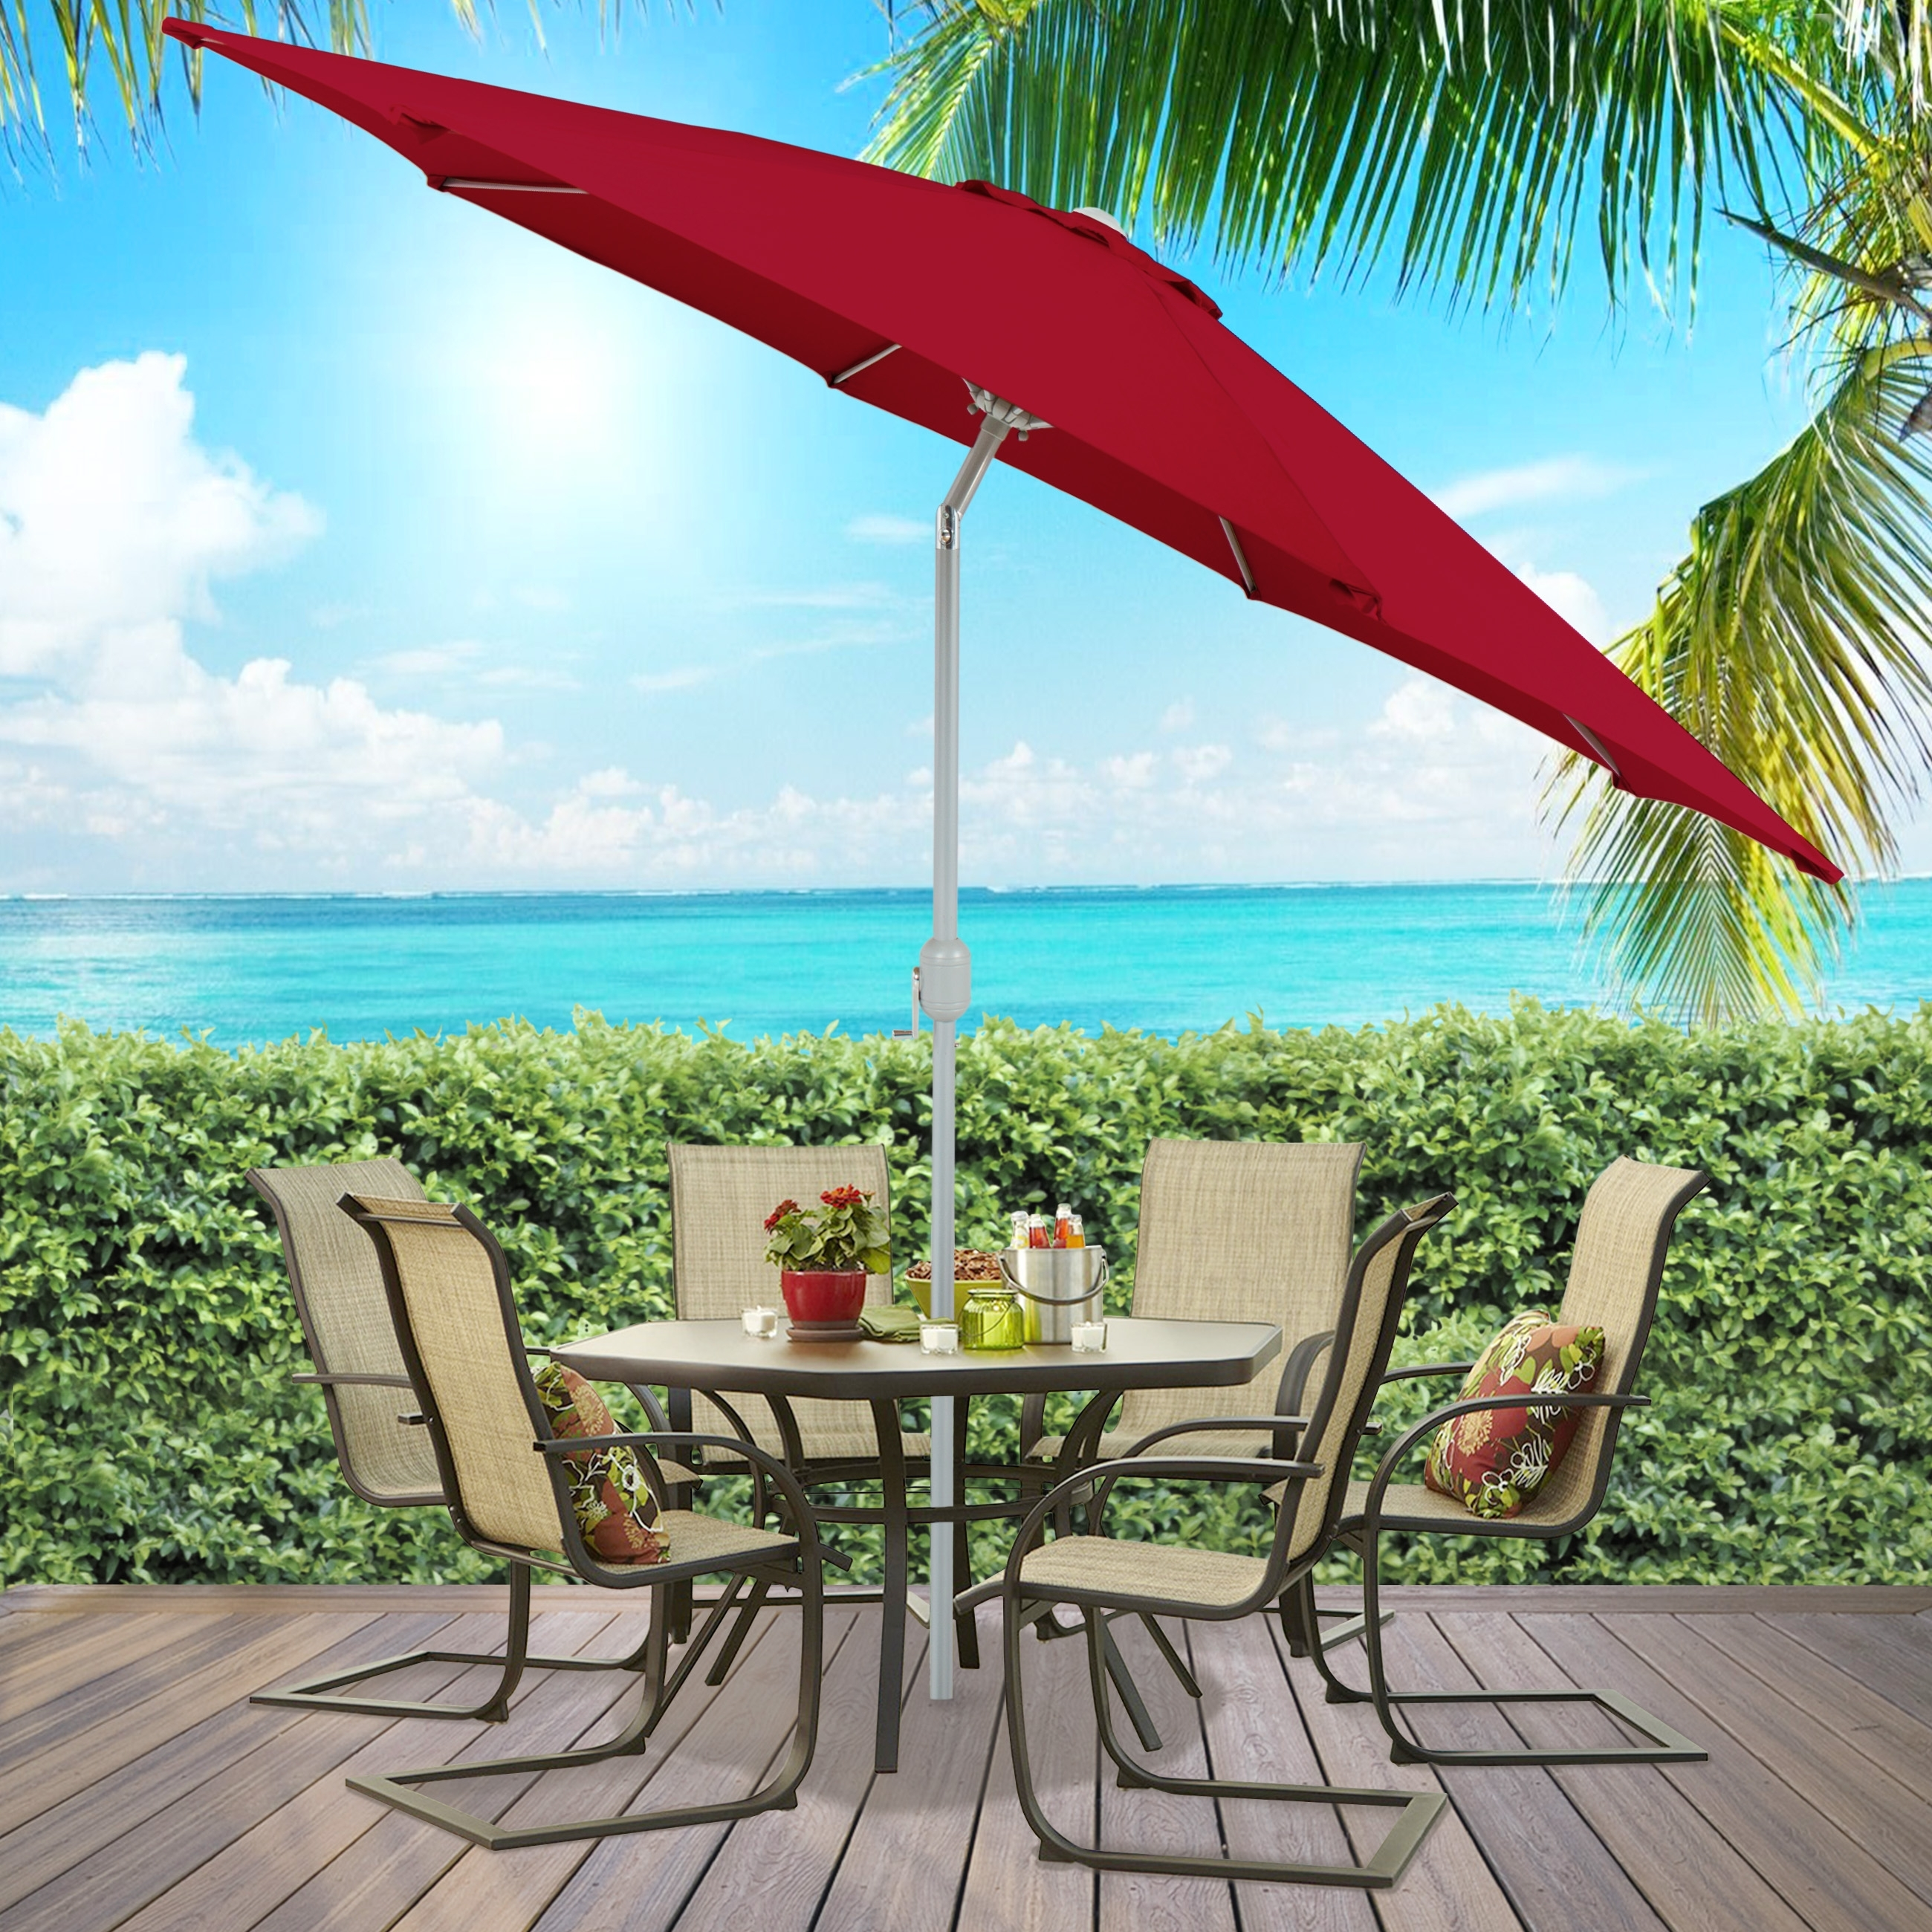 Well Known Patio Umbrella 9' Aluminum Market Tilt W/ Crank Outdoor – Multiple For Outdoor Patio Umbrellas (View 7 of 20)